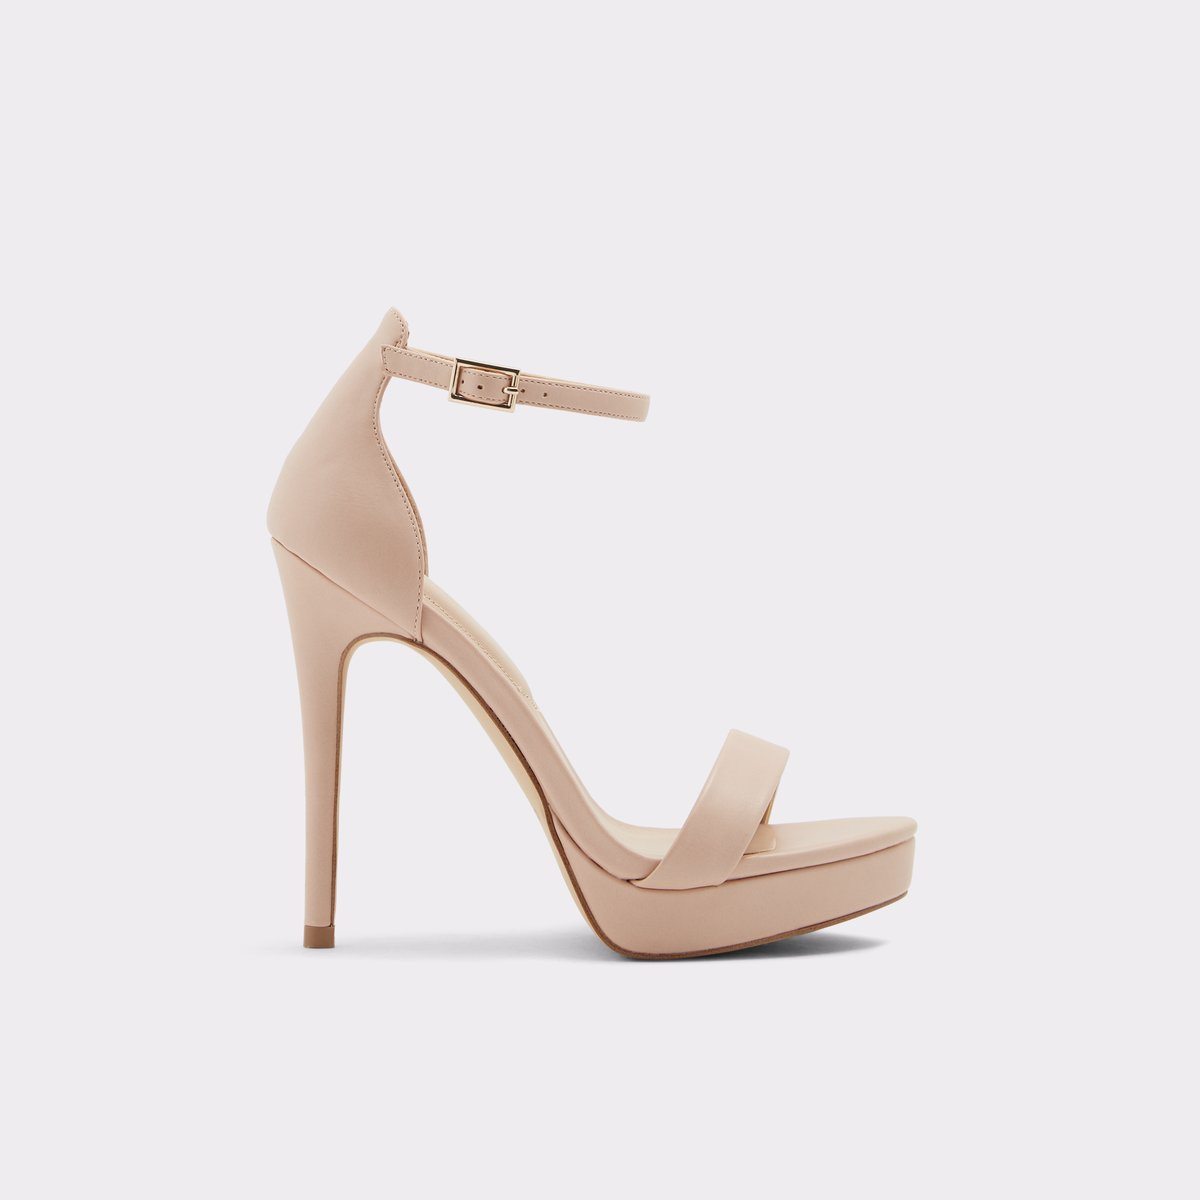 Women's Platforms | ALDO US | Tuggl